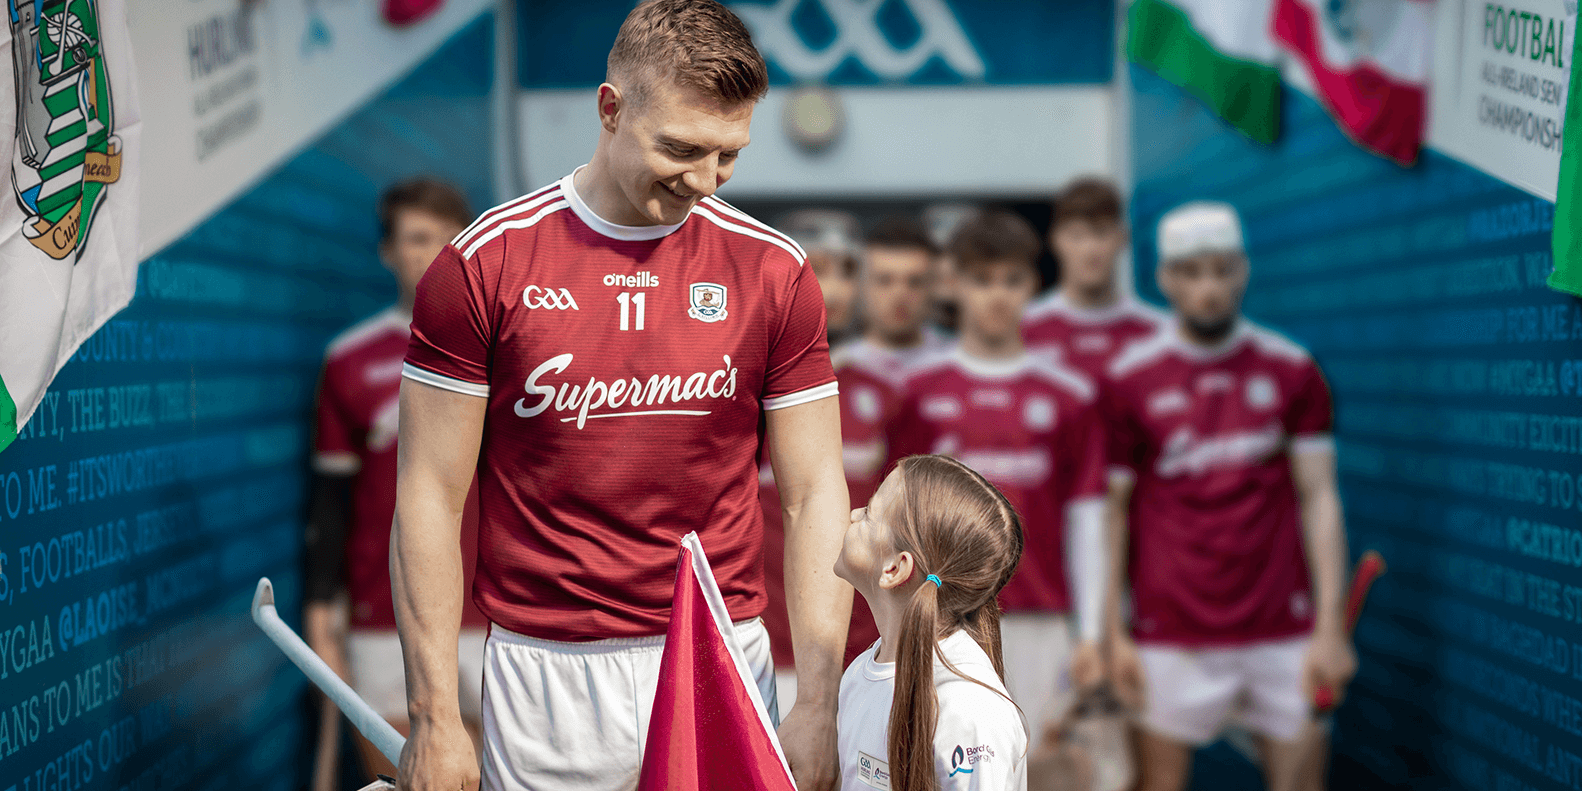 Joe Canning with flag bearer